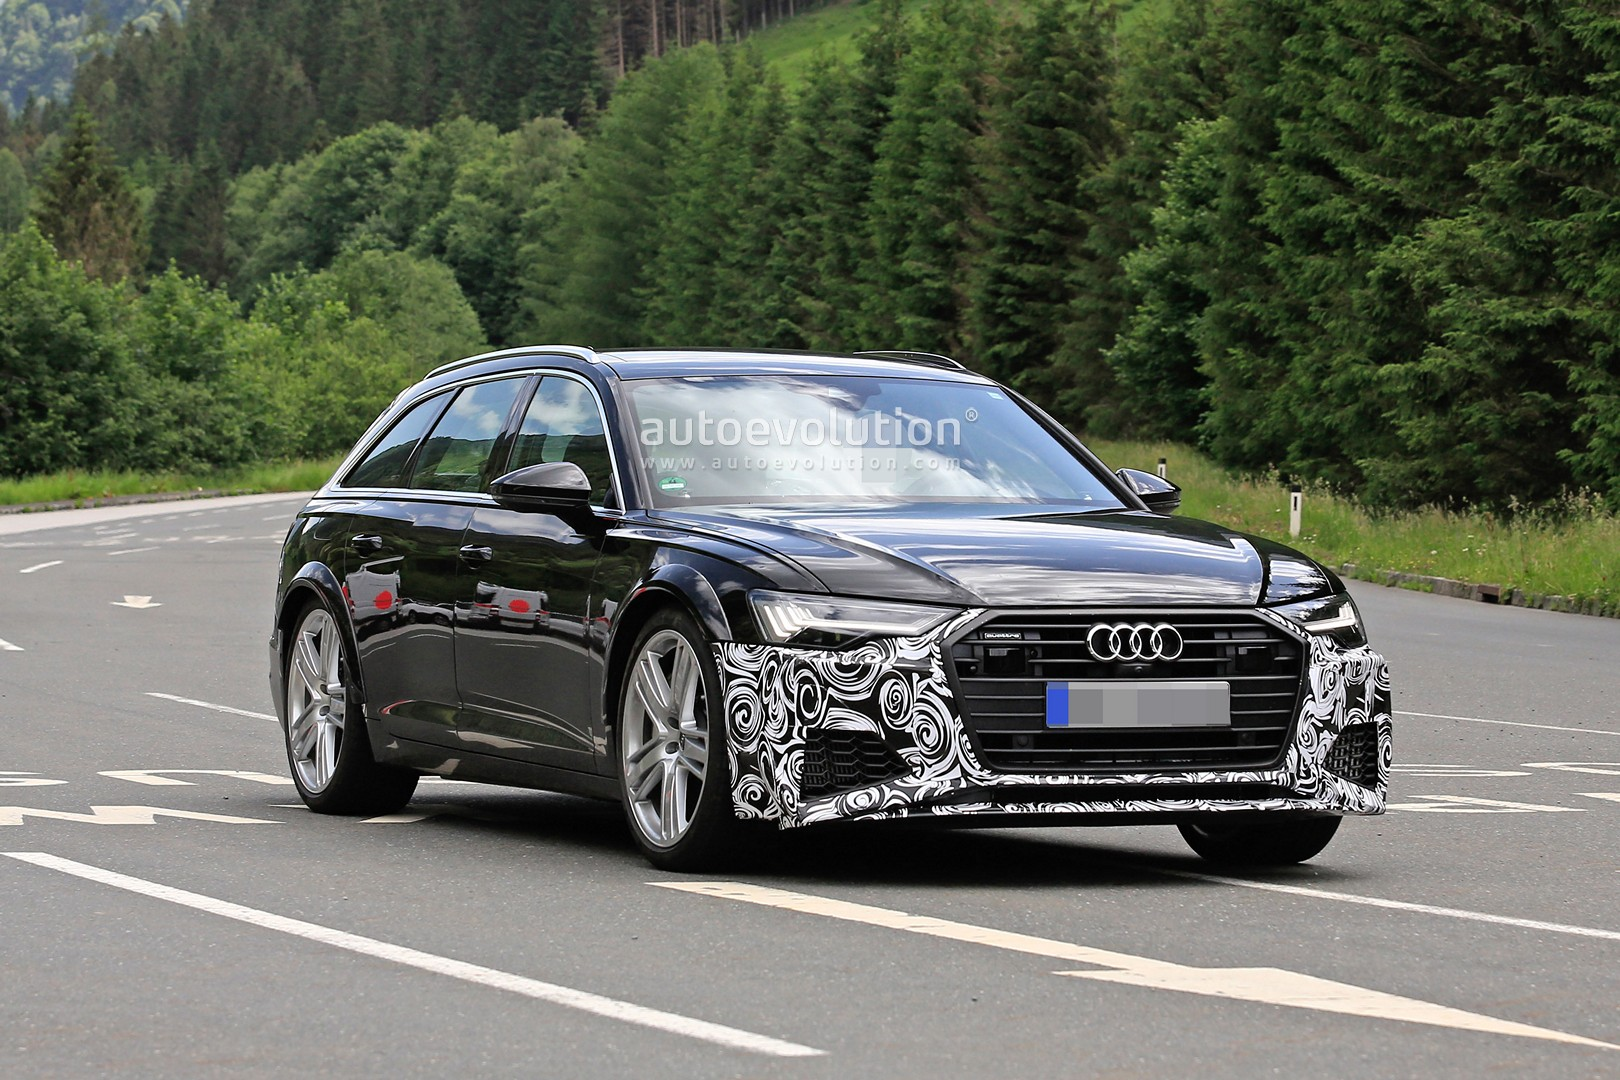 2020 Audi Rs6 Avant Makes Spy Photo Debut Autoevolution